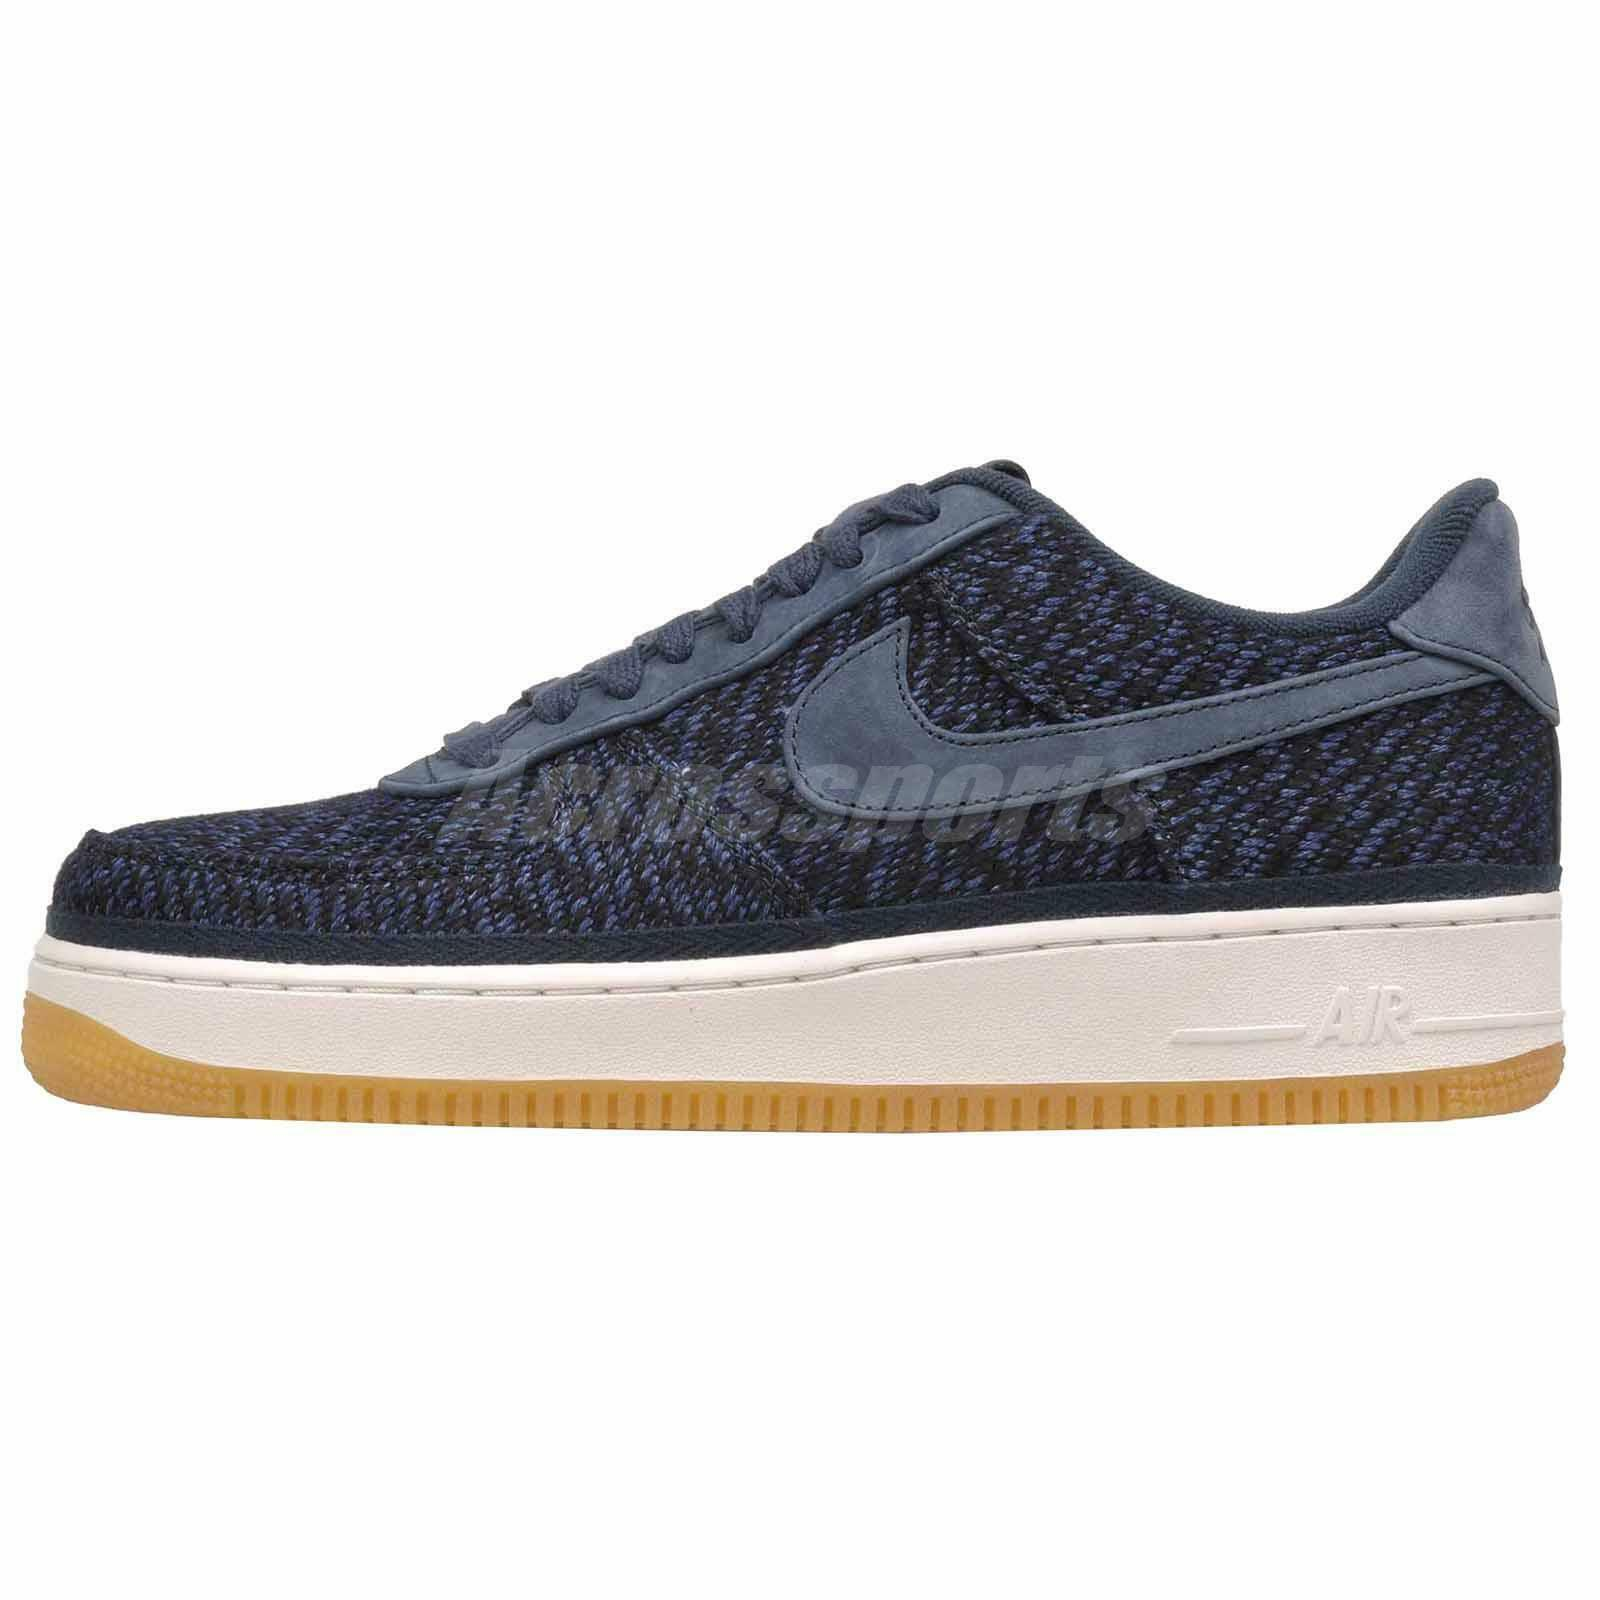 Nike Air Force 1 07 Indigo Casual Mens shoes Sneakers Navy bluee 917825-400